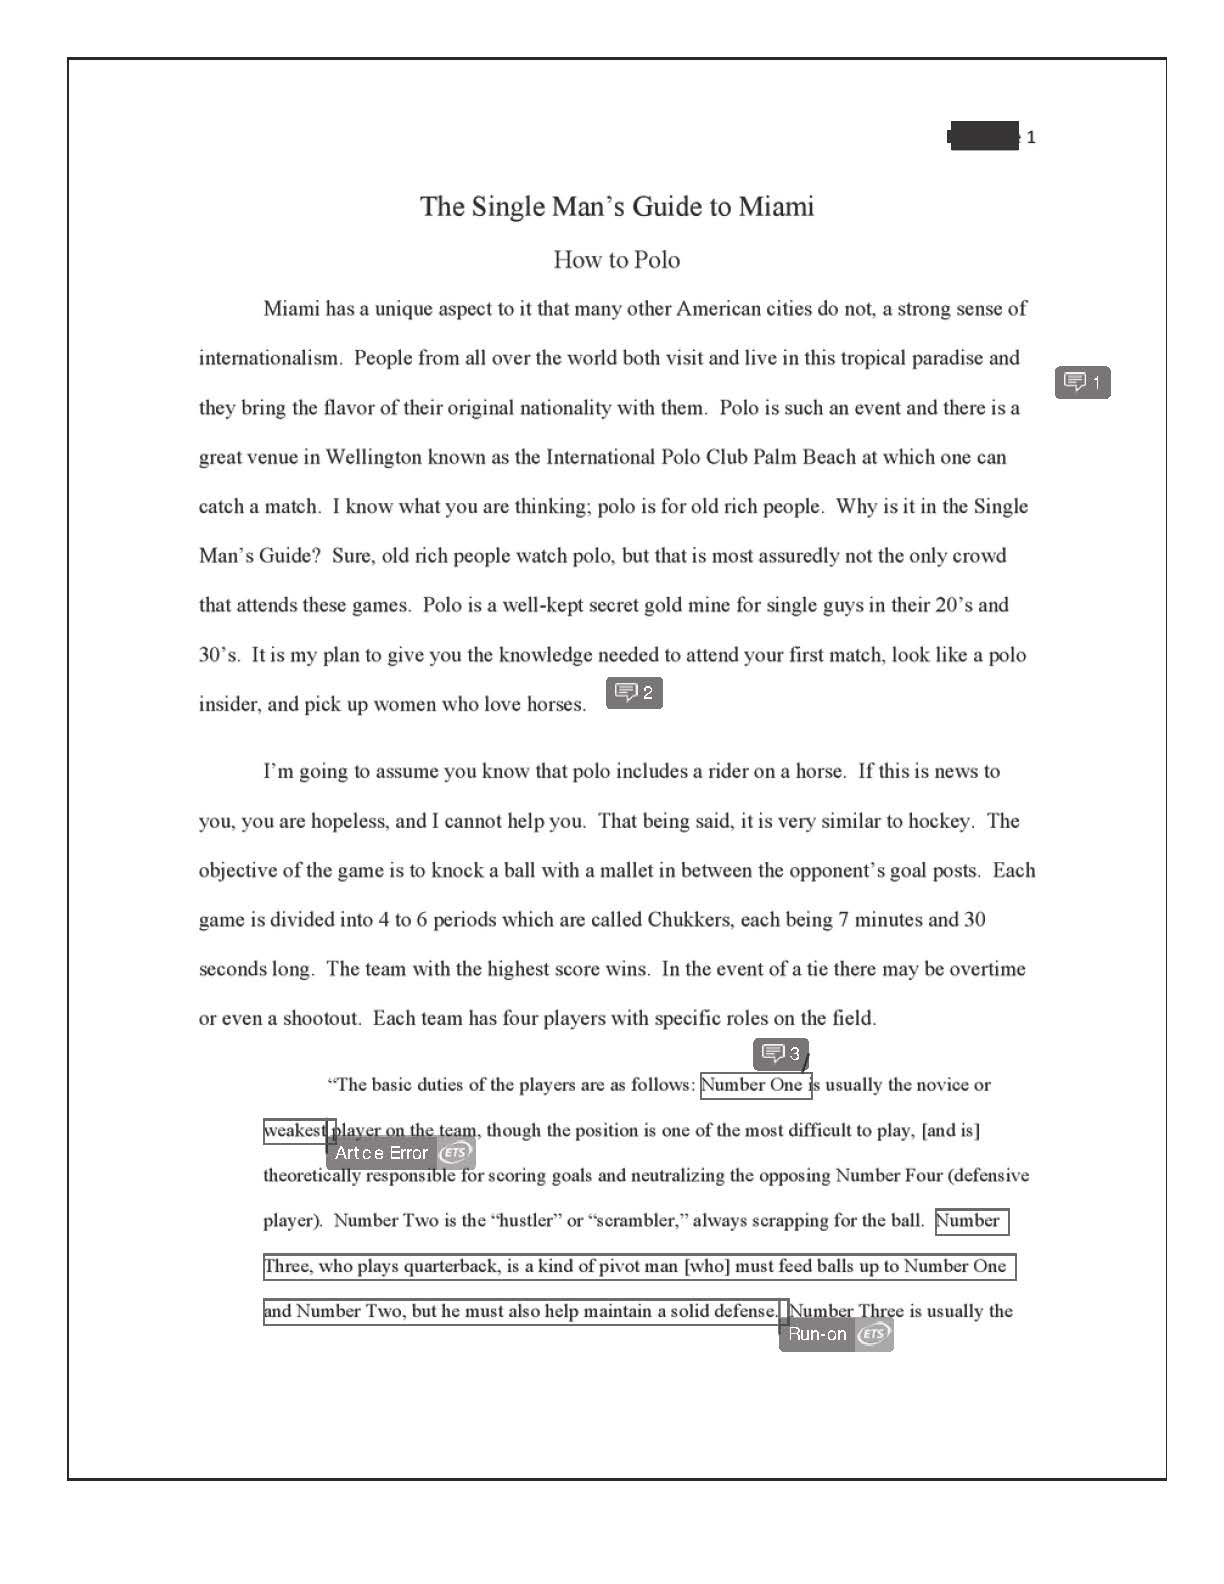 007 Informative Essay Kinds Of Writing Types Essays The Center In Hindi Final How To Polo Redacted P Pdf Task Slideshare Ppt Withs Wikipedia Dreaded Rubric Middle School Graphic Organizer Full